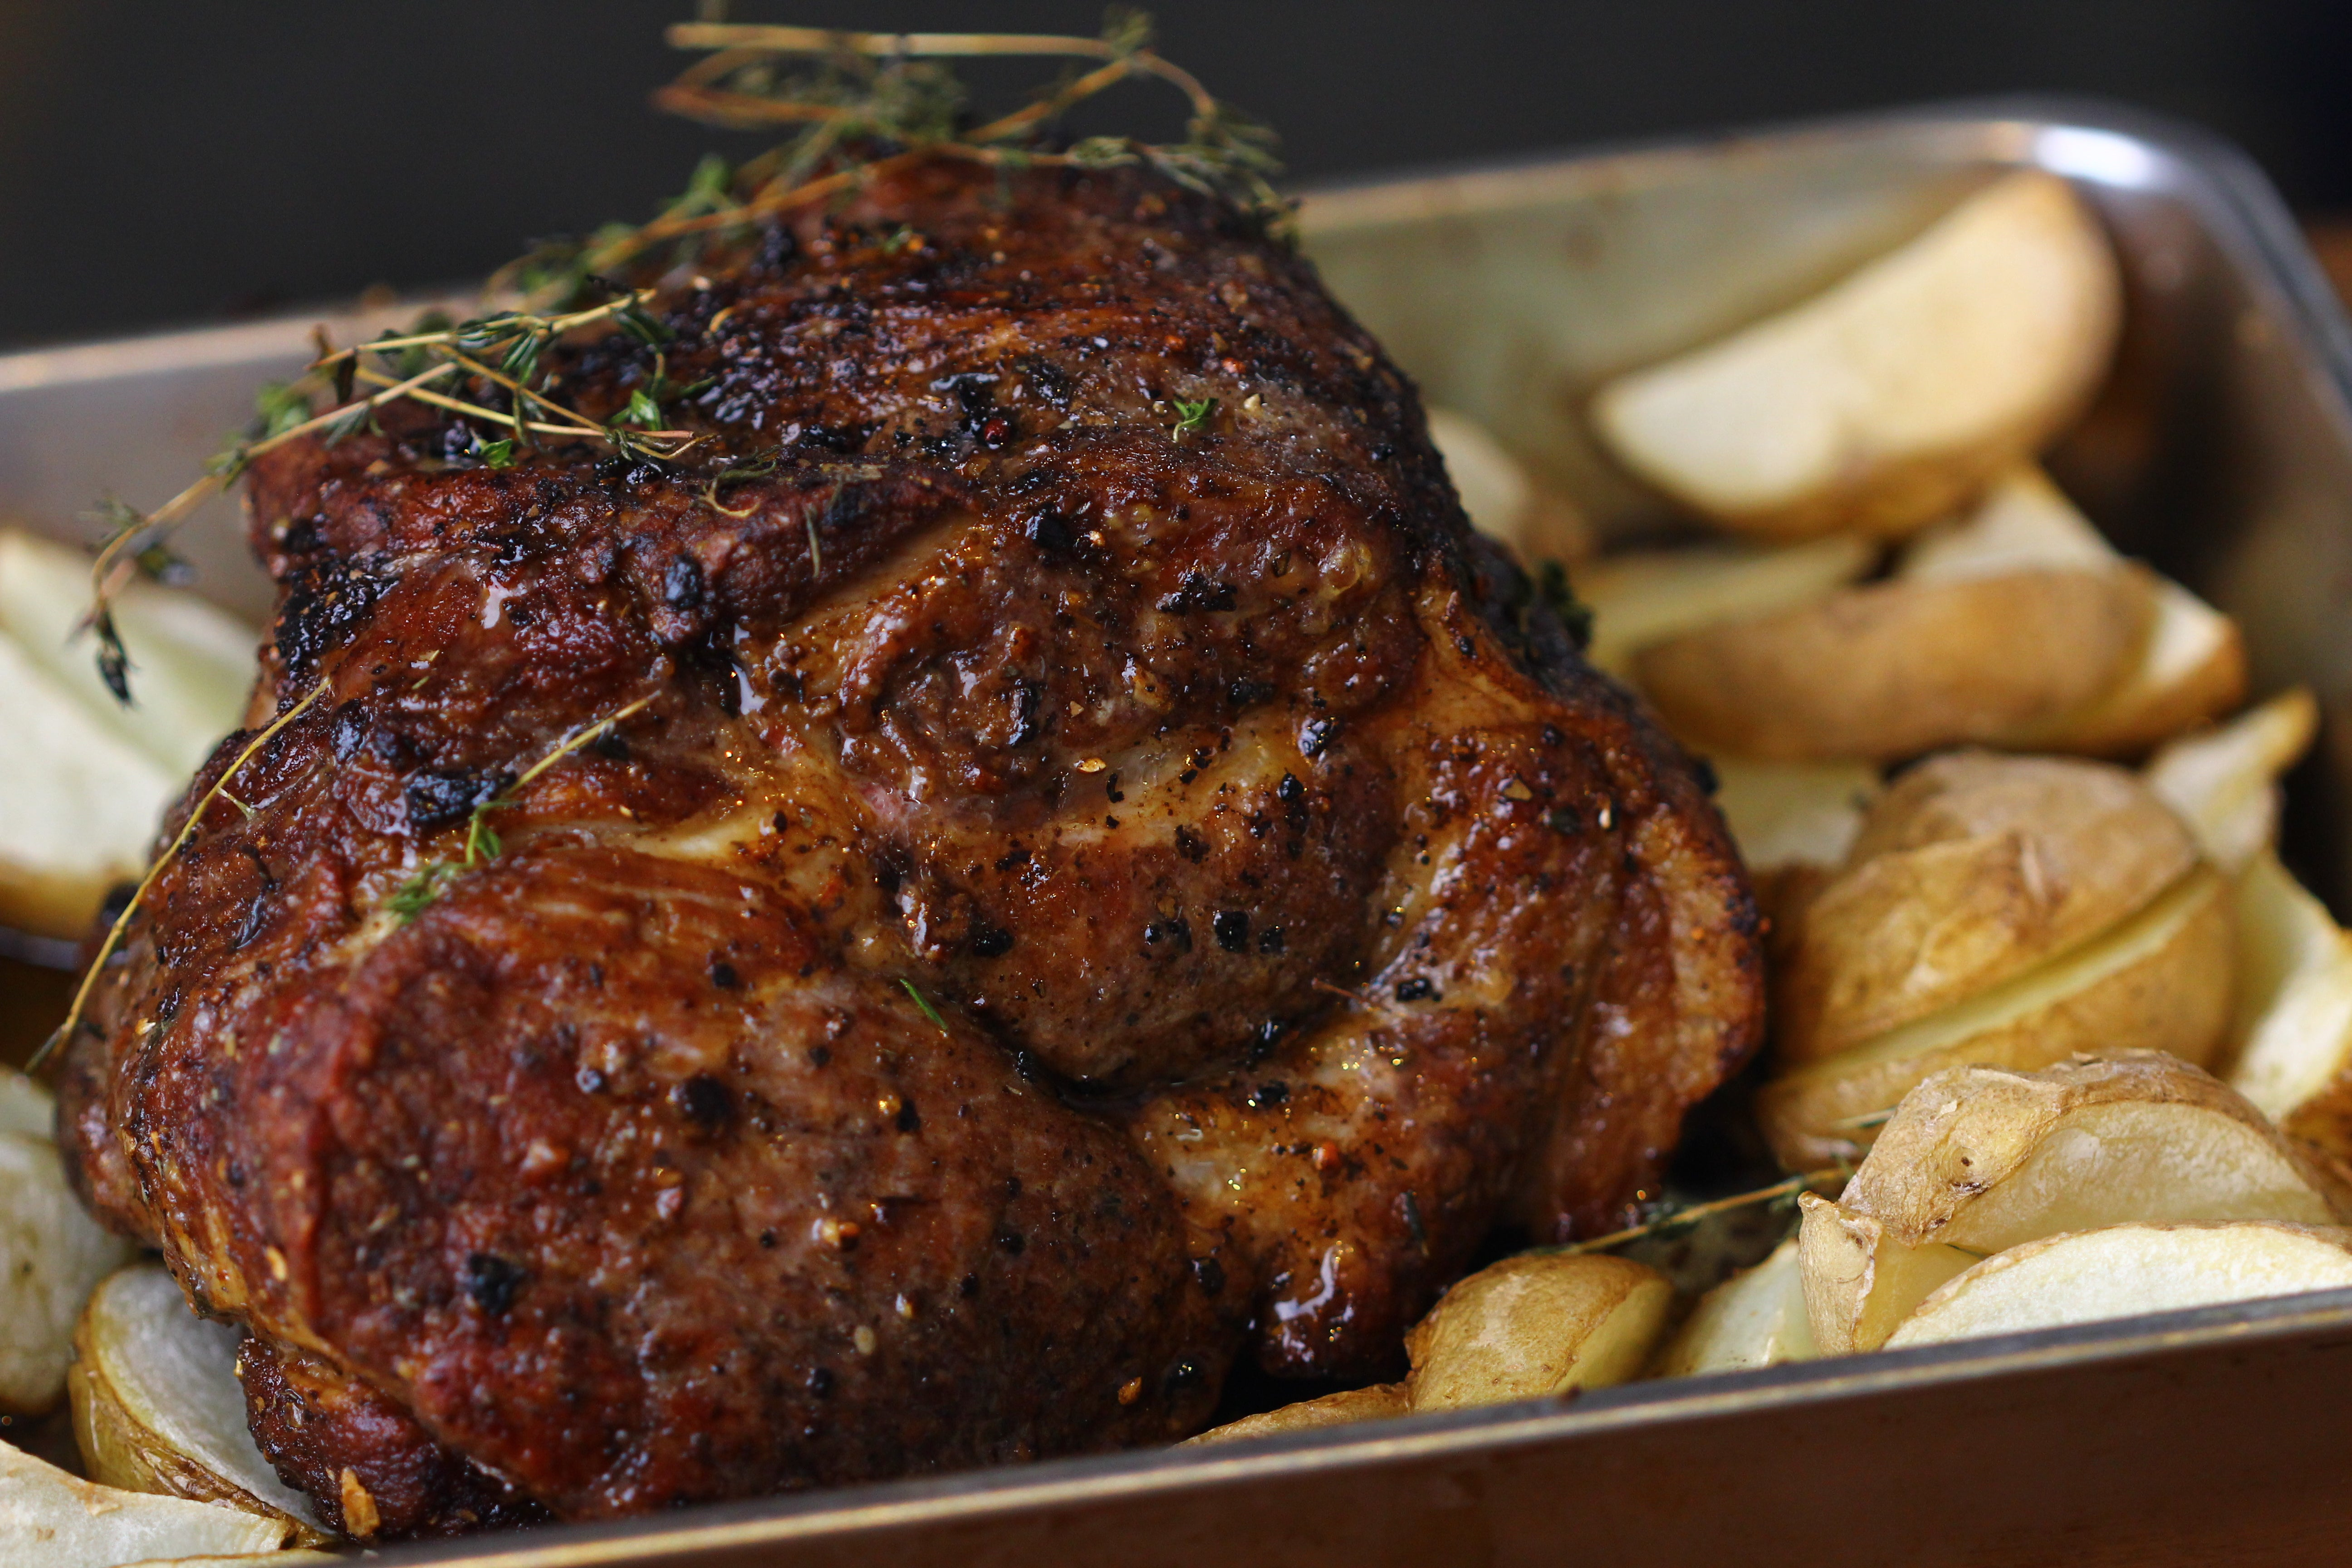 Roasted pork shoulder with its bed of potatoes and thyme